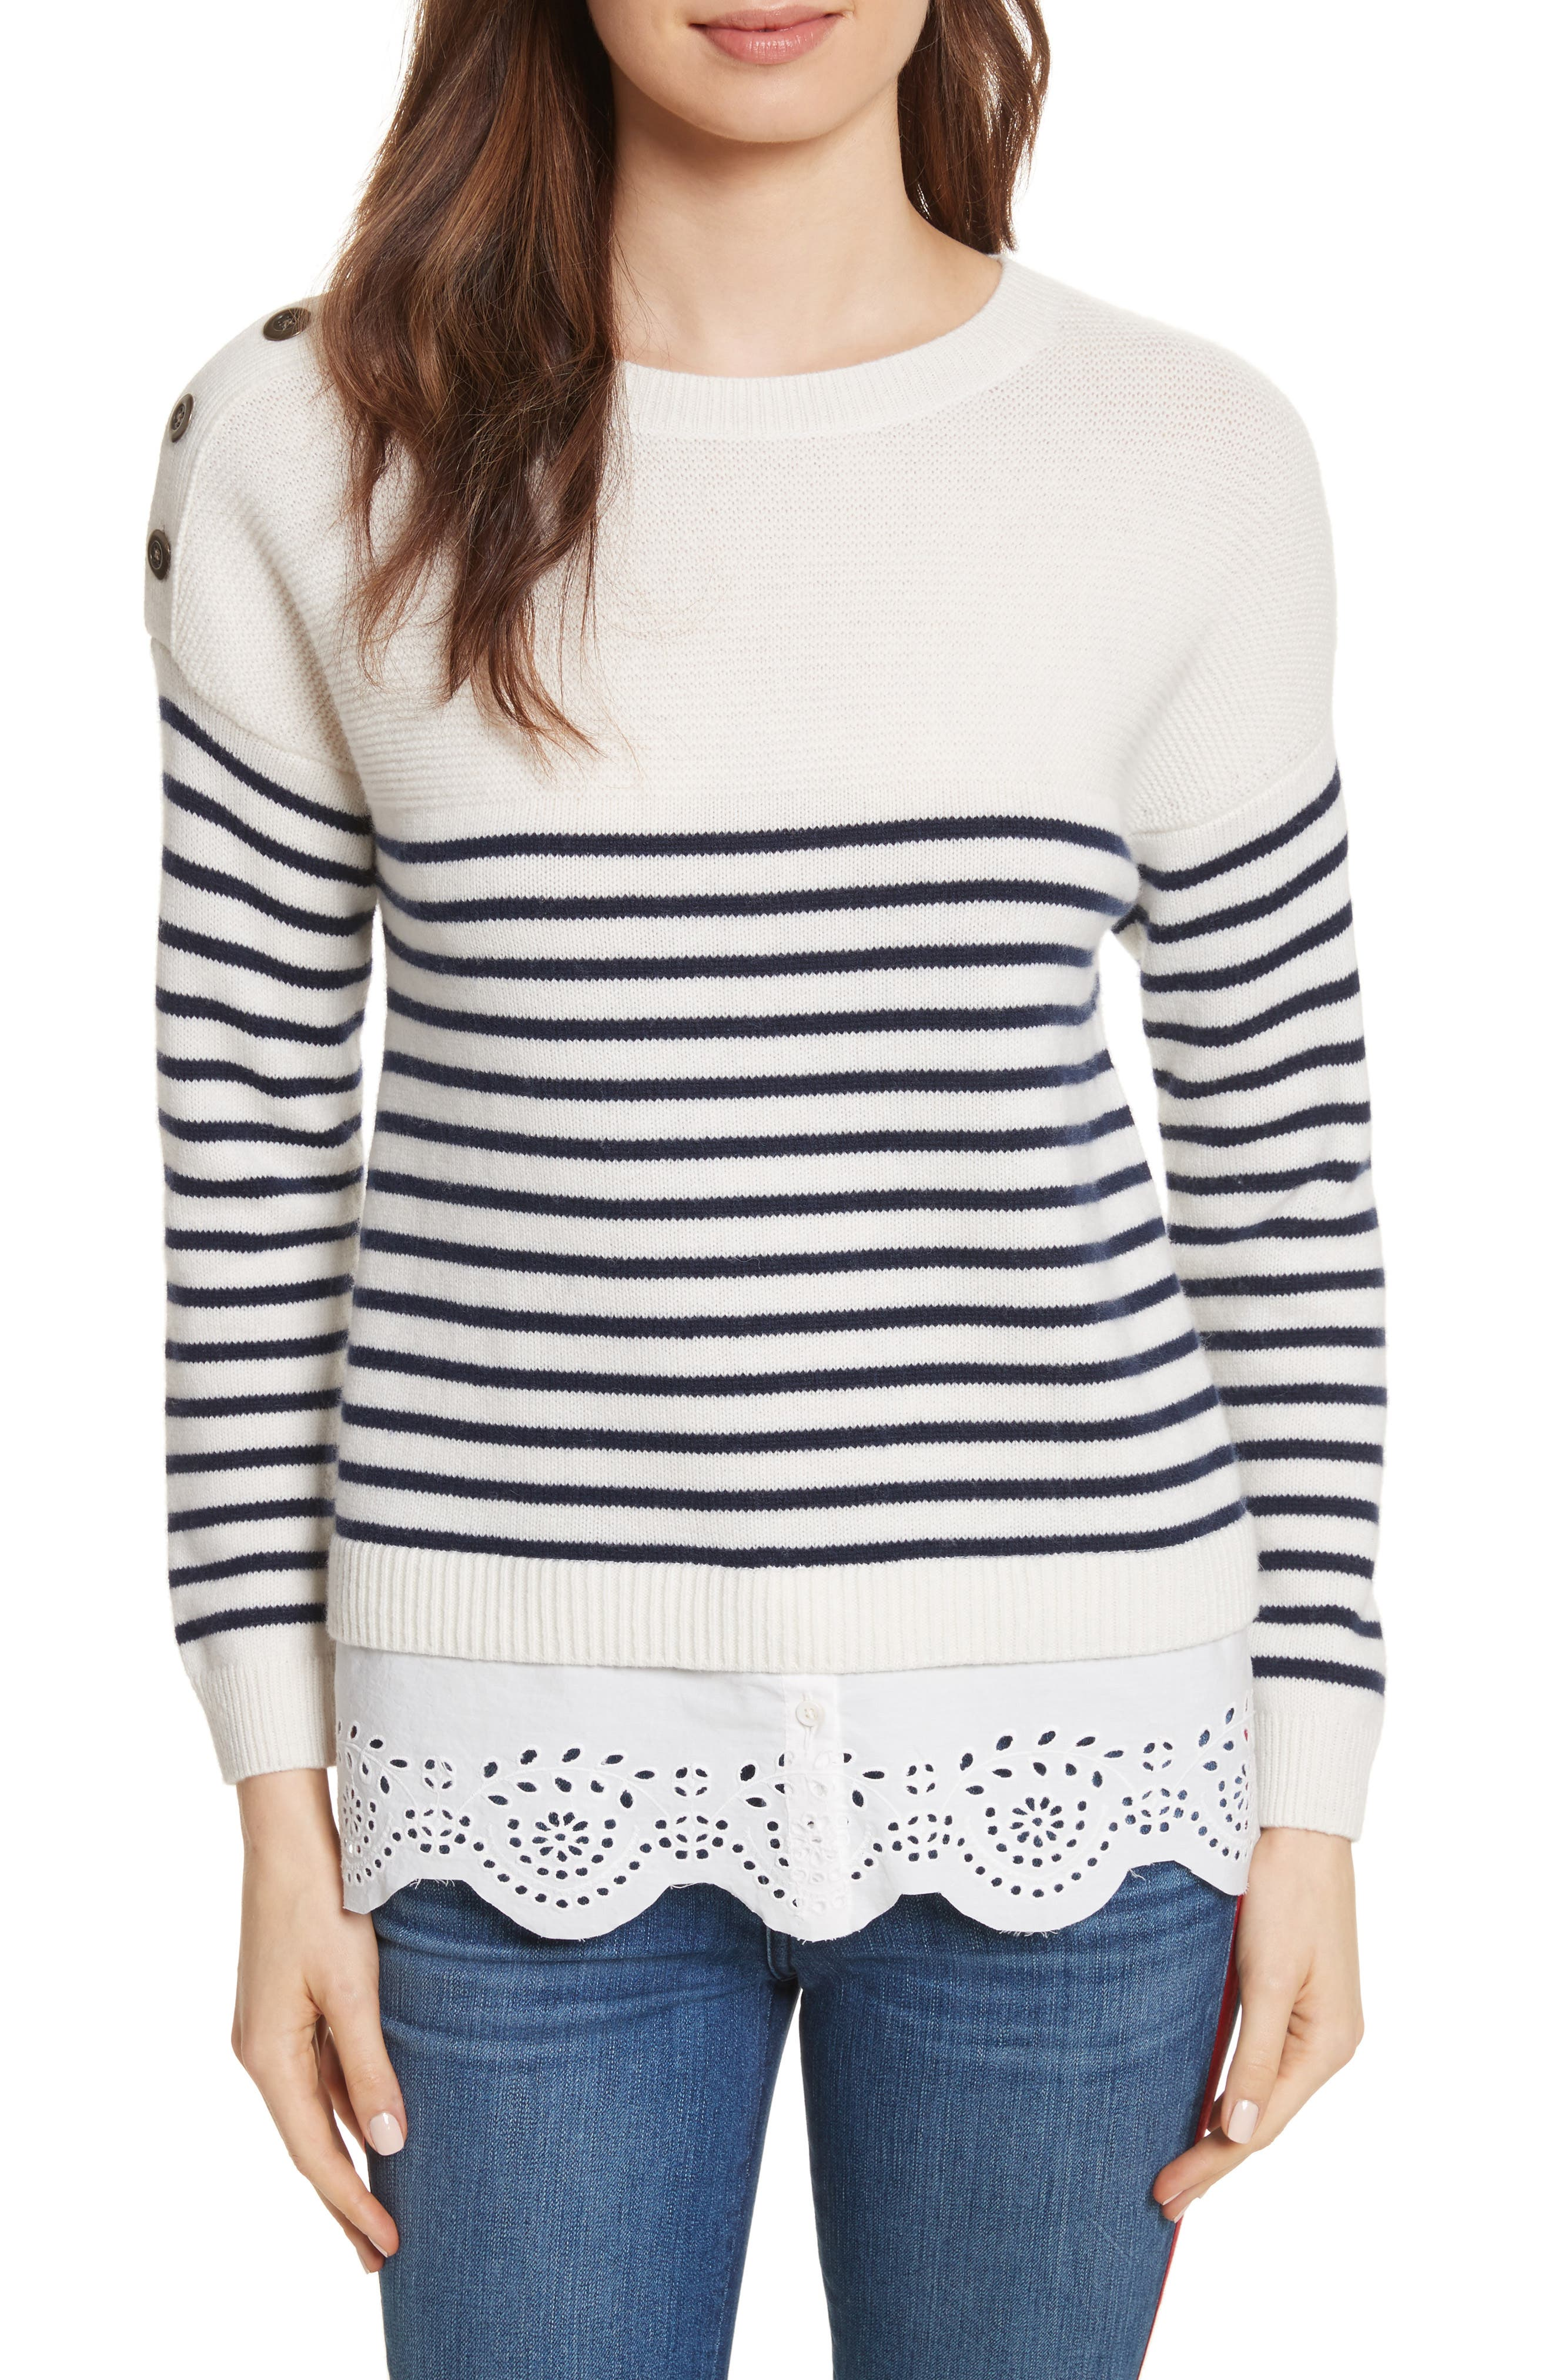 Aefre Woven Trim Wool & Cashmere Sweater,                         Main,                         color, Porcelain/ Midnight